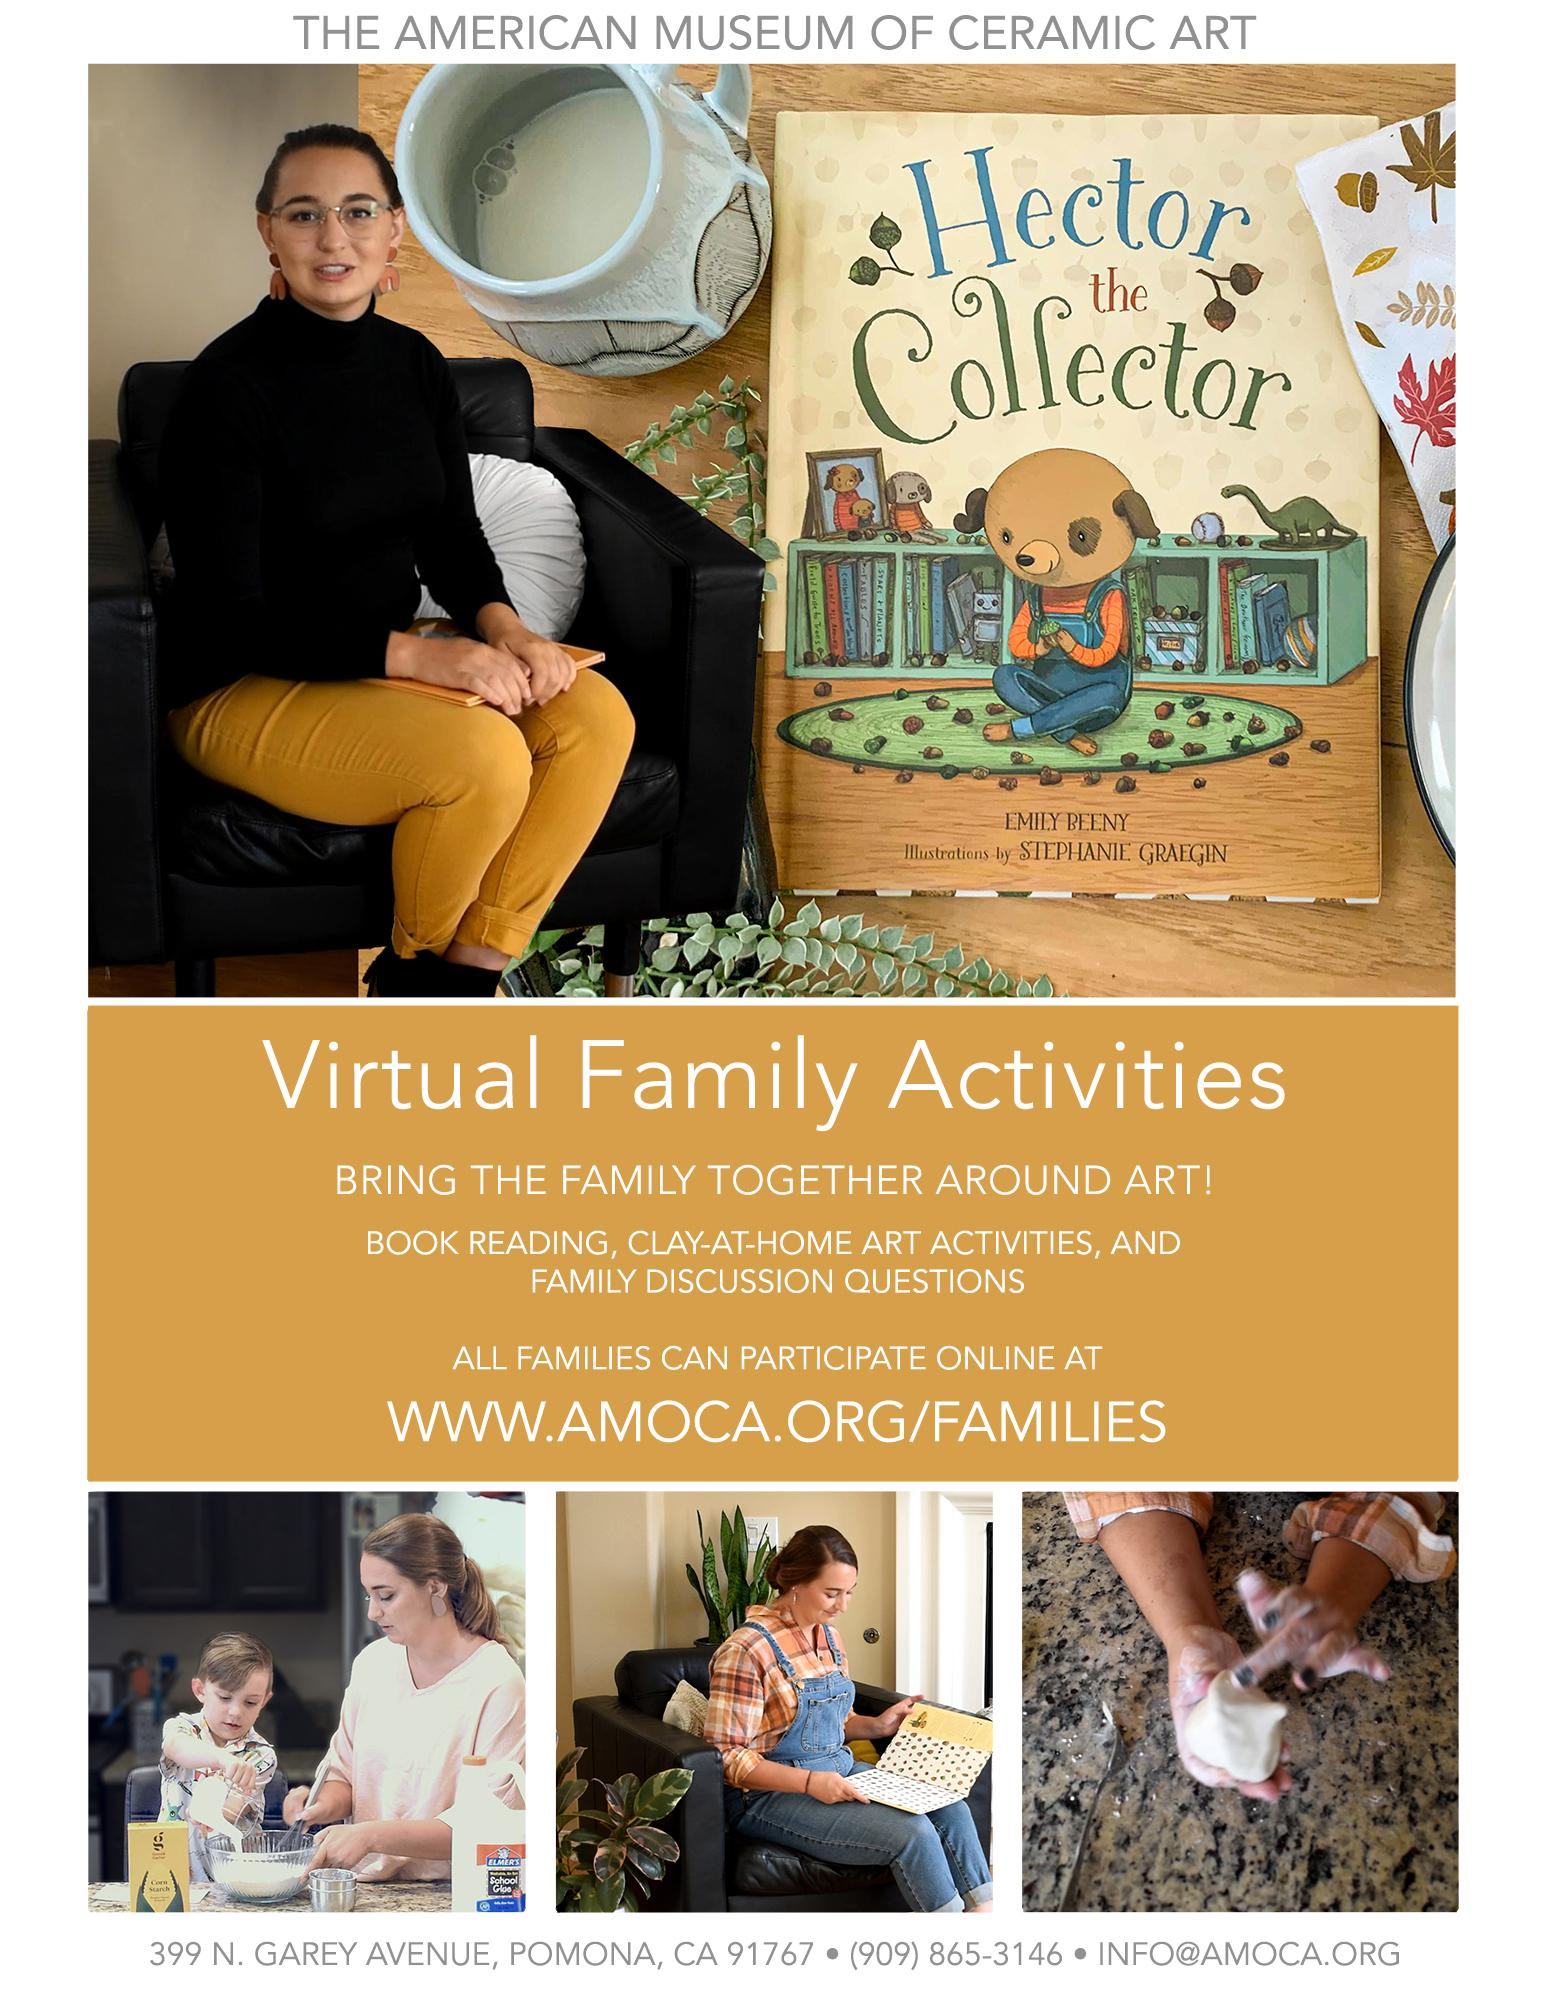 AMOCA Virtual Family Activities